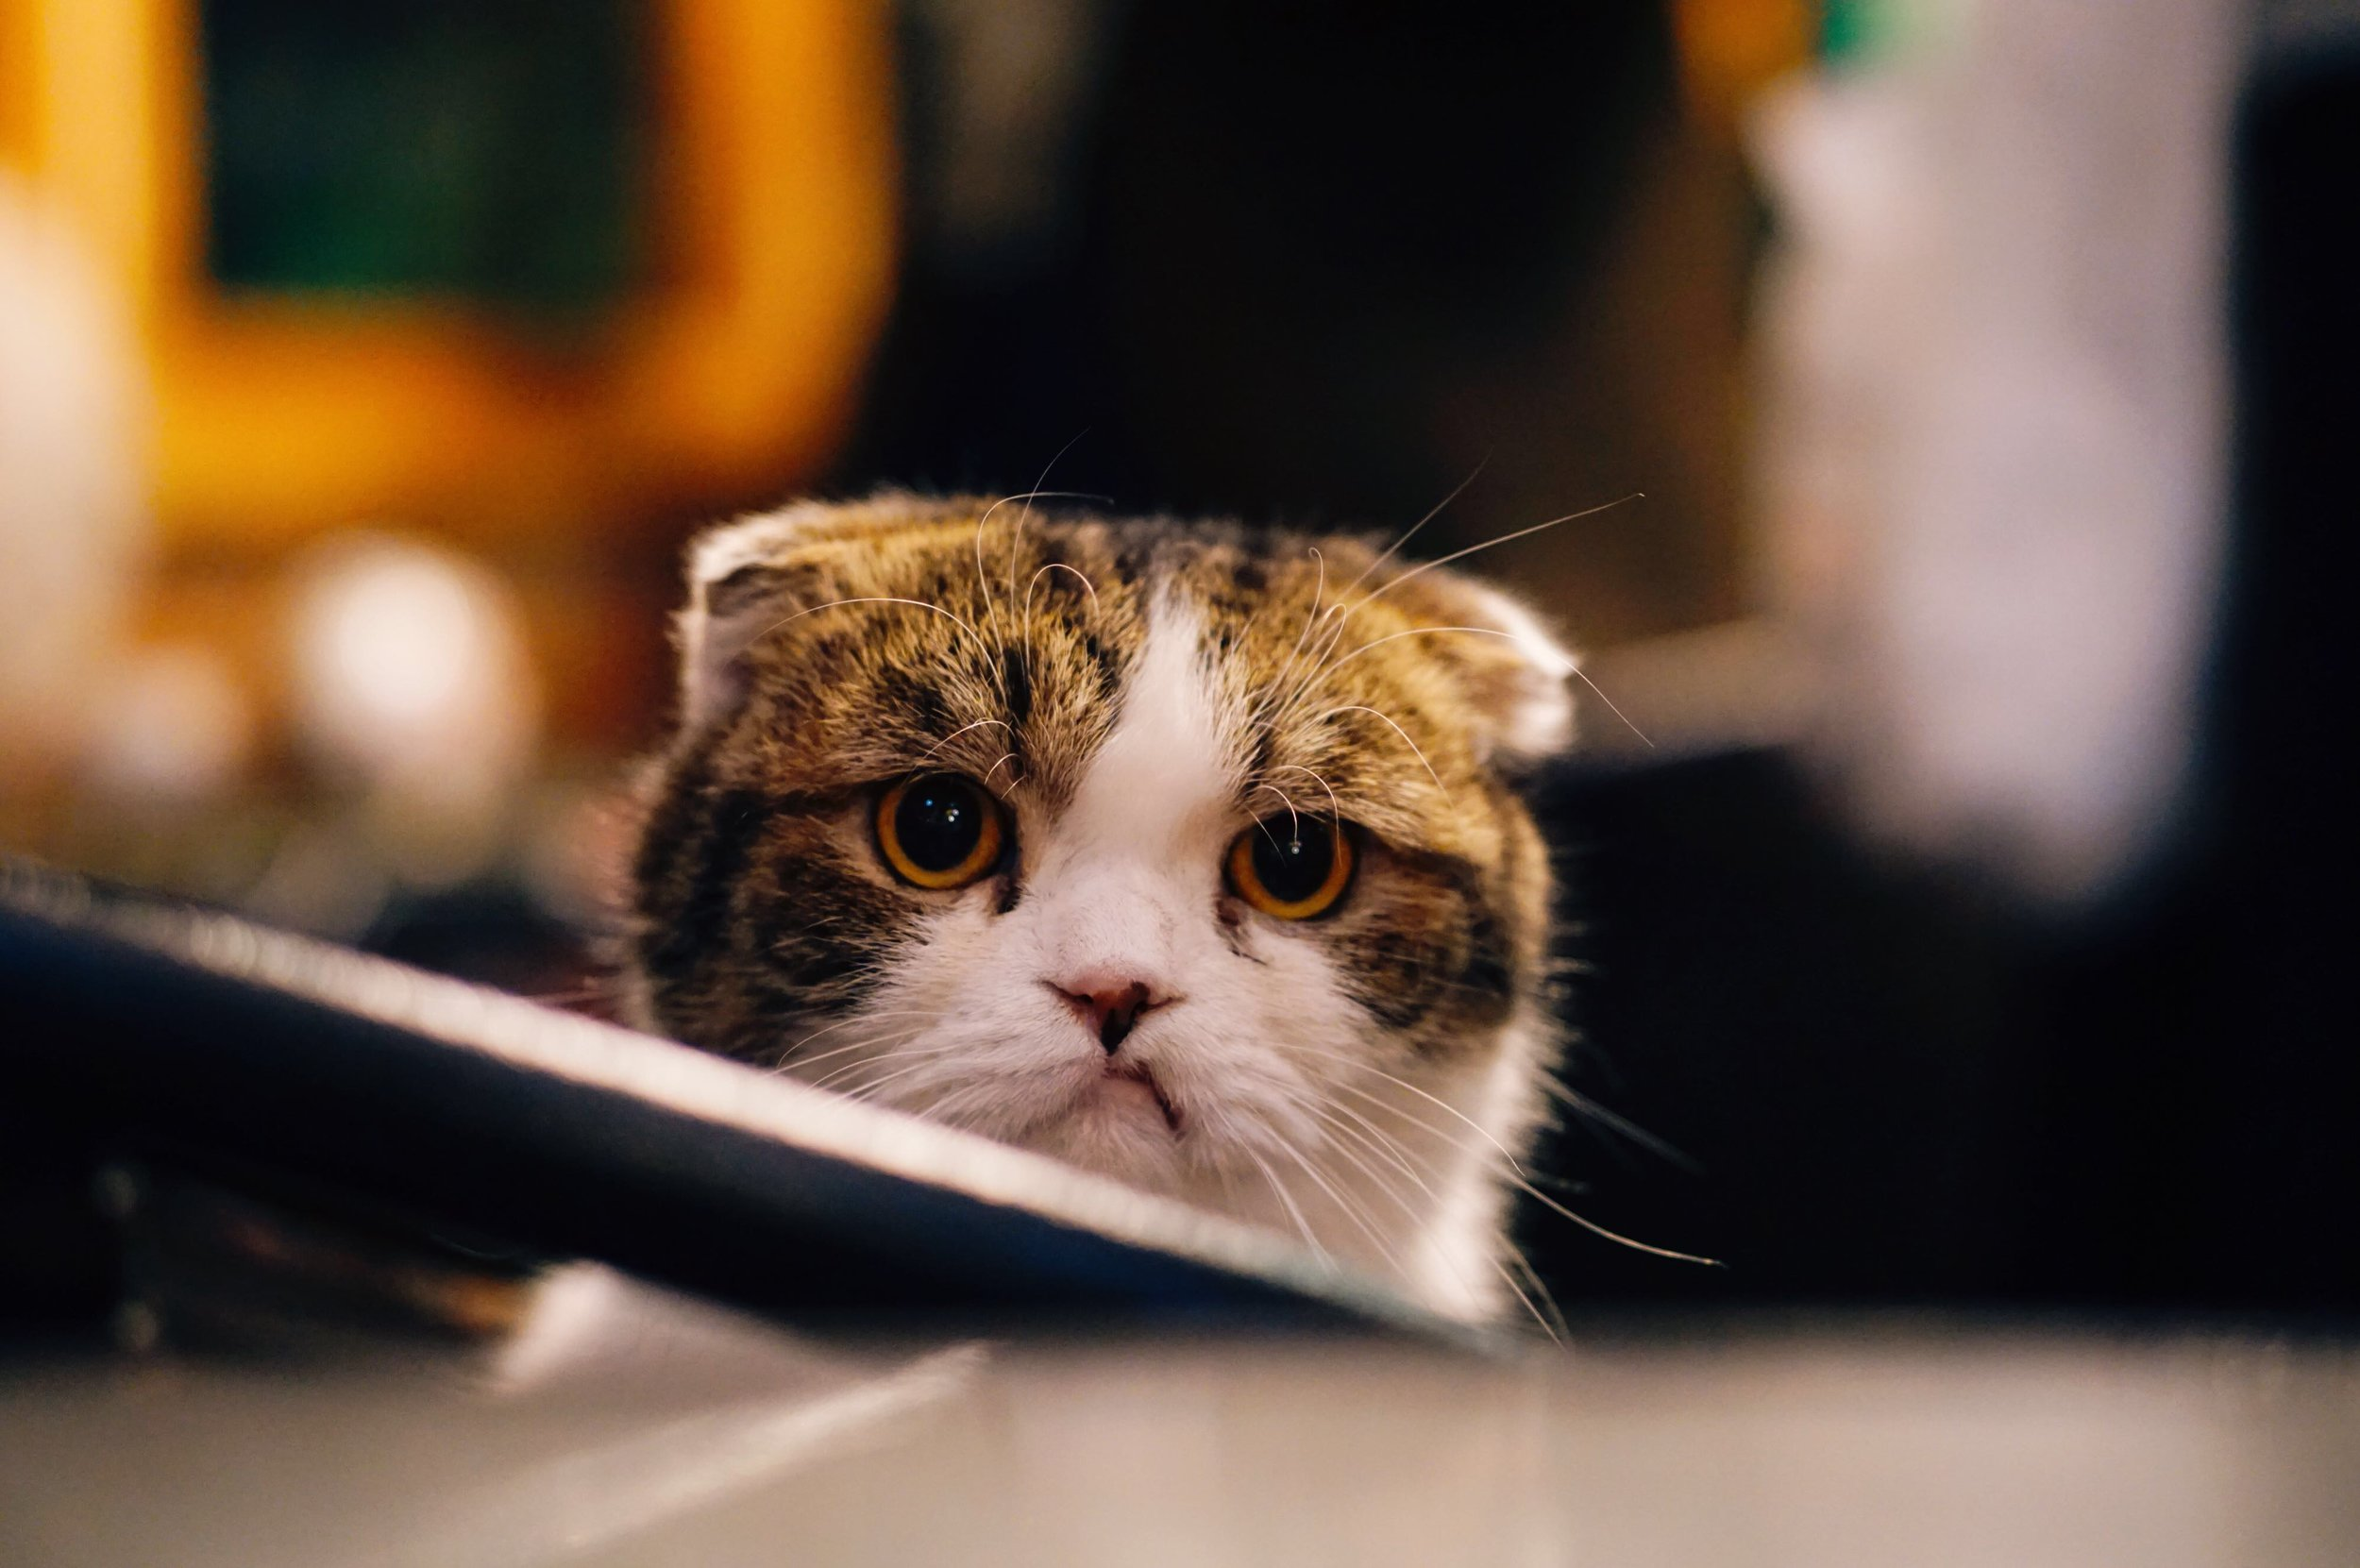 Like this cat, things can get frustrating sometimes when you're niching down in your business and it's not clicking.